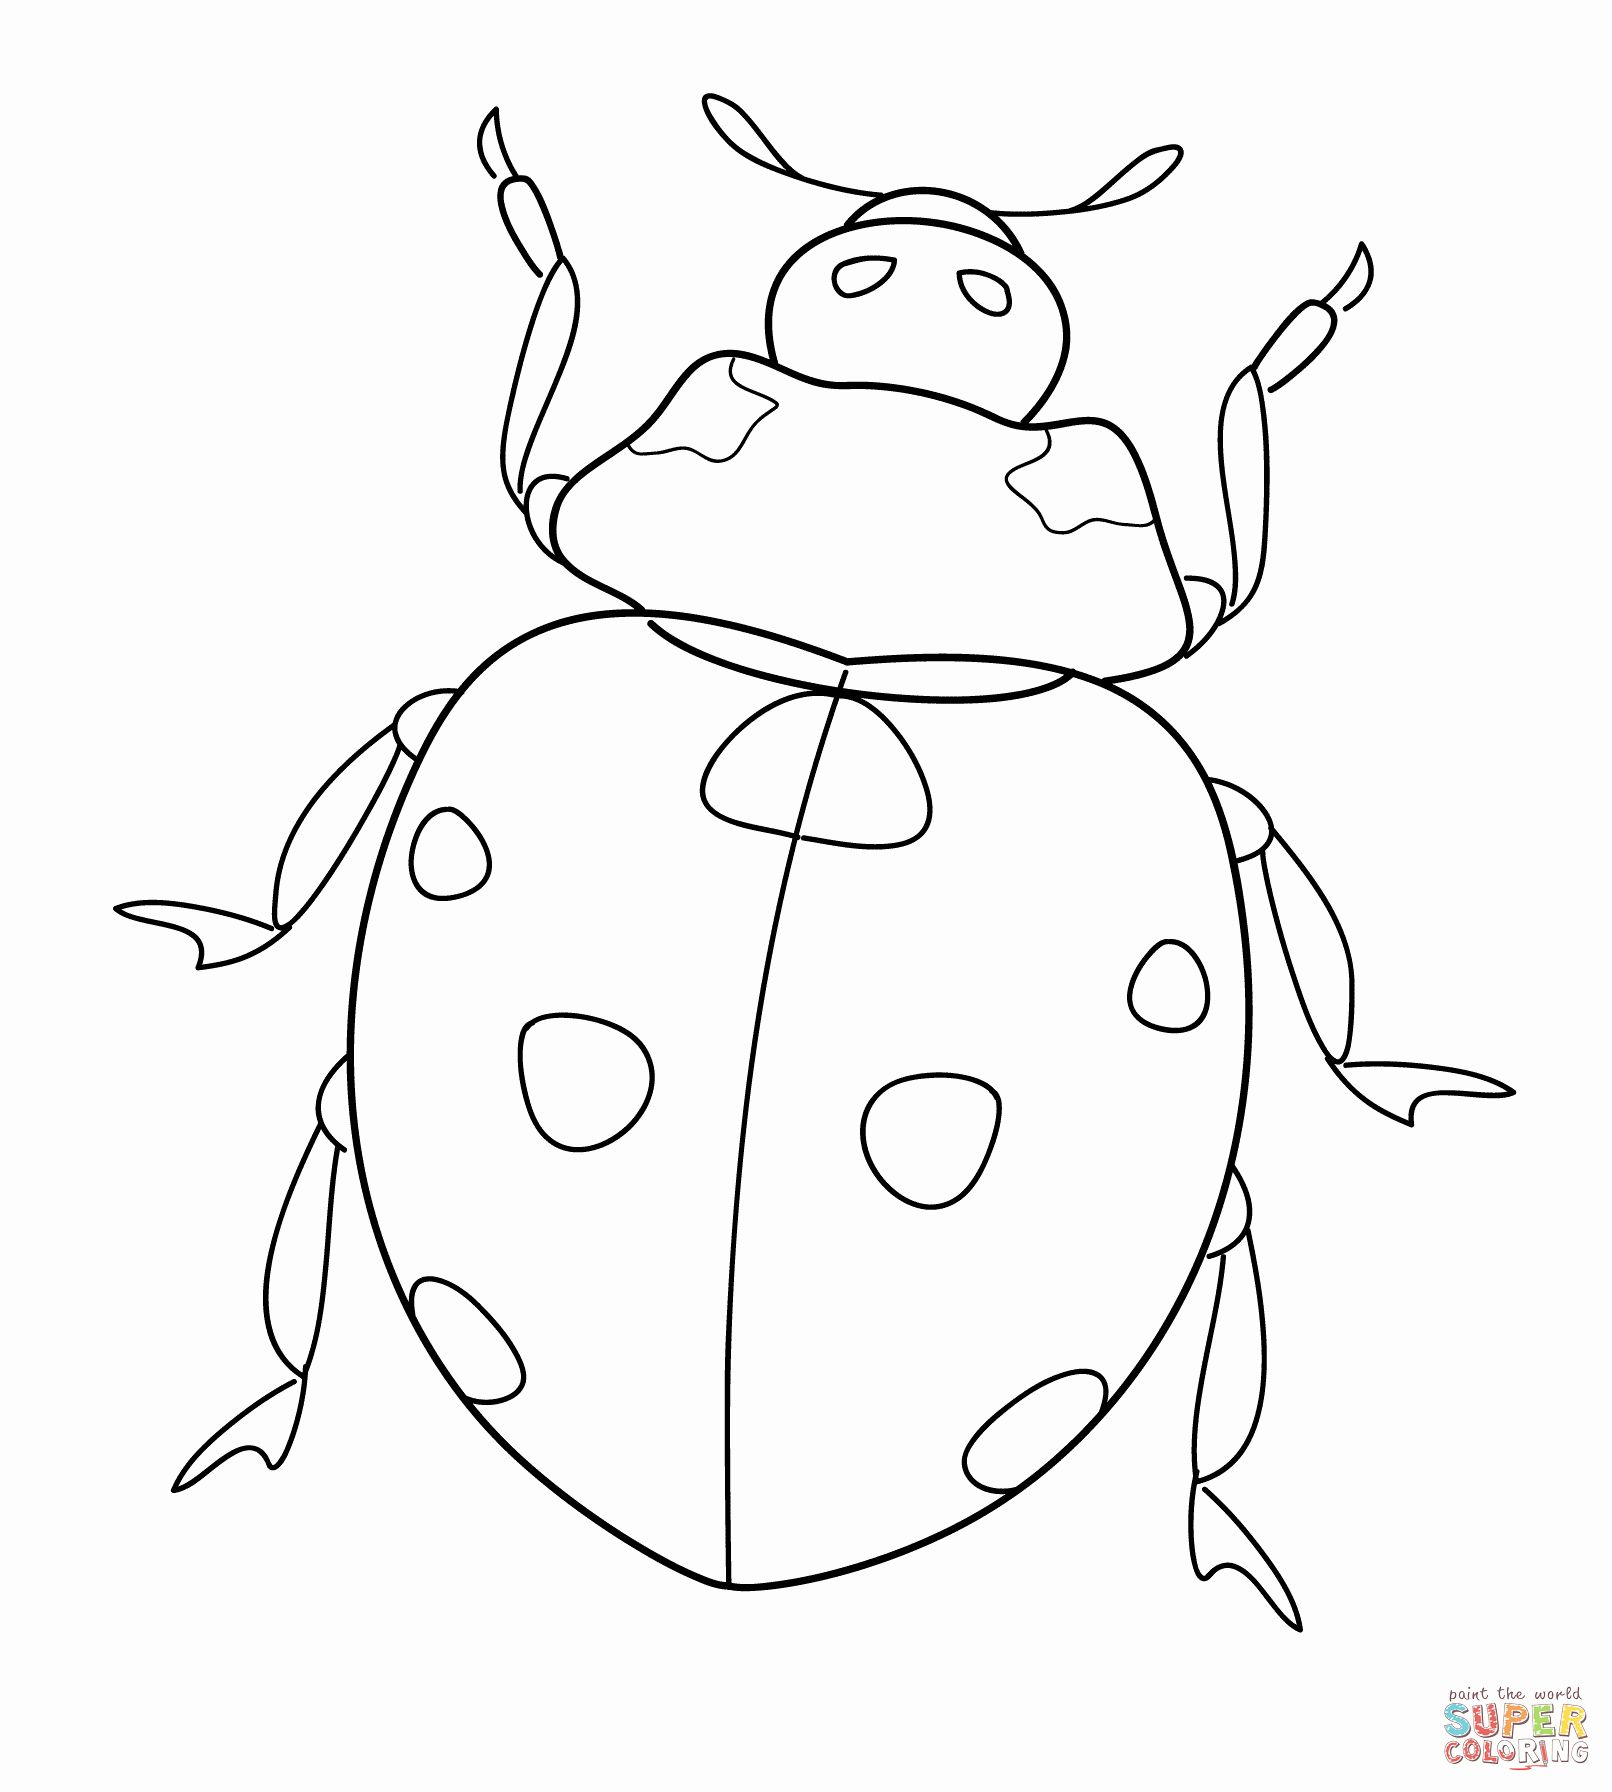 28 Lady Bug Coloring Page in 2020